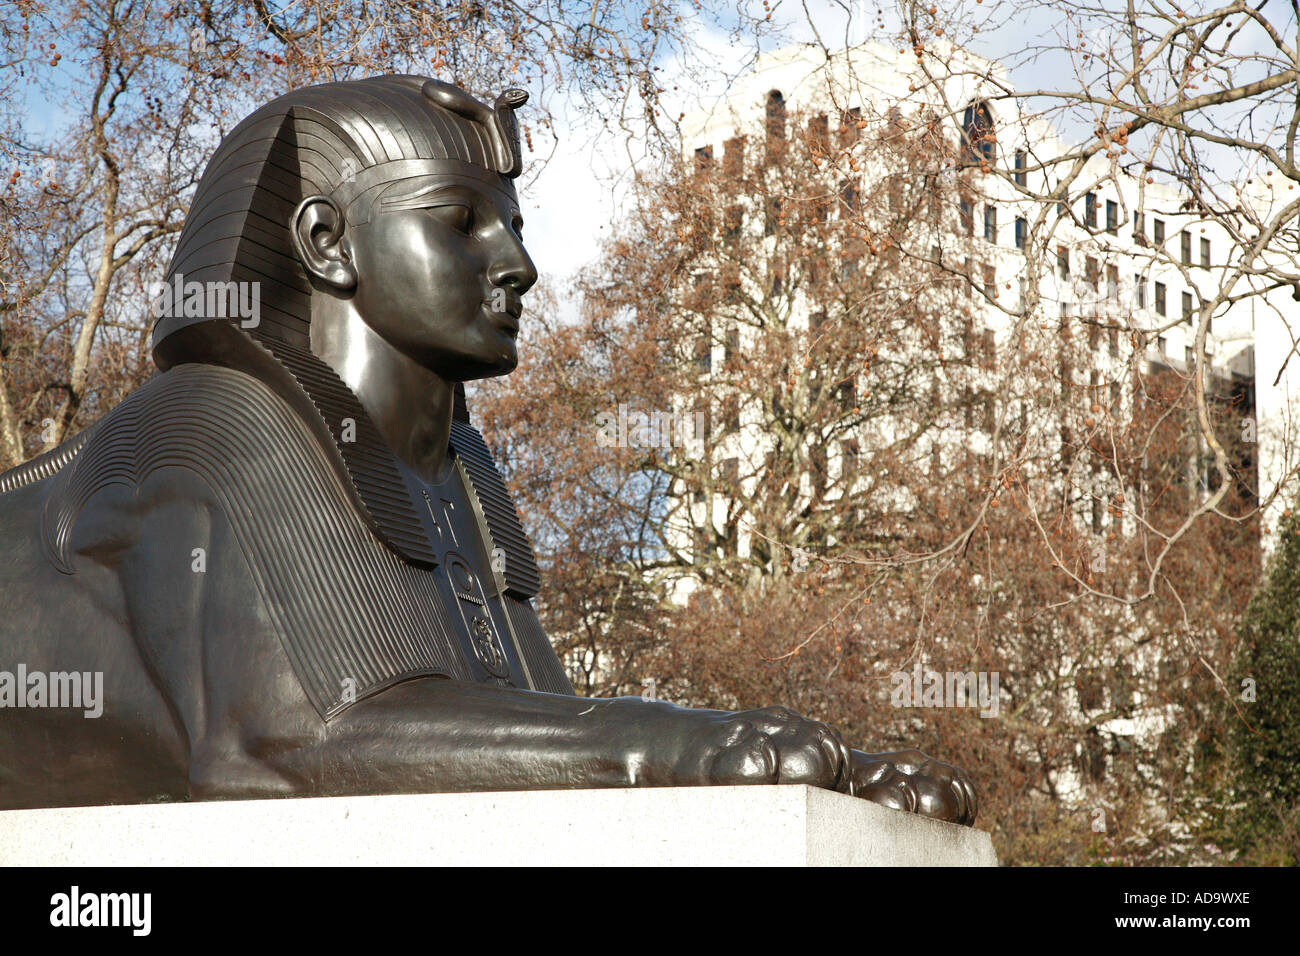 Sphinx sculpture at Cleopatras Needle - Stock Image